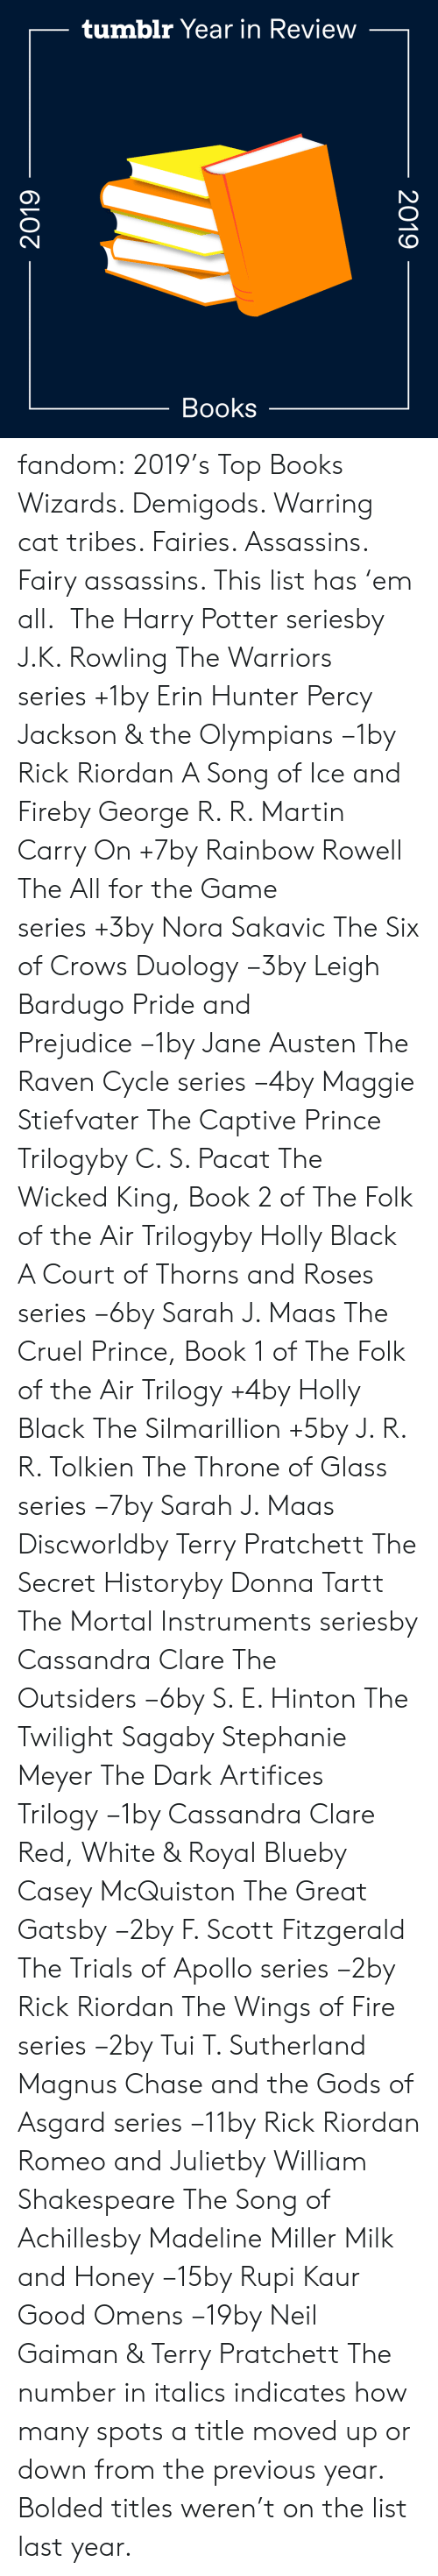 Shakespeare: tumblr Year in Review  Books  2019  2019 fandom:  2019's Top Books  Wizards. Demigods. Warring cat tribes. Fairies. Assassins. Fairy assassins. This list has 'em all.   The Harry Potter seriesby J.K. Rowling  The Warriors series +1by Erin Hunter  Percy Jackson & the Olympians −1by Rick Riordan  A Song of Ice and Fireby George R. R. Martin  Carry On +7by Rainbow Rowell  The All for the Game series +3by Nora Sakavic  The Six of Crows Duology −3by Leigh Bardugo  Pride and Prejudice −1by Jane Austen  The Raven Cycle series −4by Maggie Stiefvater  The Captive Prince Trilogyby C. S. Pacat  The Wicked King, Book 2 of The Folk of the Air Trilogyby Holly Black  A Court of Thorns and Roses series −6by Sarah J. Maas  The Cruel Prince, Book 1 of The Folk of the Air Trilogy +4by Holly Black  The Silmarillion +5by J. R. R. Tolkien  The Throne of Glass series −7by Sarah J. Maas  Discworldby Terry Pratchett  The Secret Historyby Donna Tartt  The Mortal Instruments seriesby Cassandra Clare  The Outsiders −6by S. E. Hinton  The Twilight Sagaby Stephanie Meyer  The Dark Artifices Trilogy −1by Cassandra Clare  Red, White & Royal Blueby Casey McQuiston  The Great Gatsby −2by F. Scott Fitzgerald  The Trials of Apollo series −2by Rick Riordan  The Wings of Fire series −2by Tui T. Sutherland  Magnus Chase and the Gods of Asgard series −11by Rick Riordan  Romeo and Julietby William Shakespeare  The Song of Achillesby Madeline Miller  Milk and Honey −15by Rupi Kaur  Good Omens −19by Neil Gaiman & Terry Pratchett The number in italics indicates how many spots a title moved up or down from the previous year. Bolded titles weren't on the list last year.